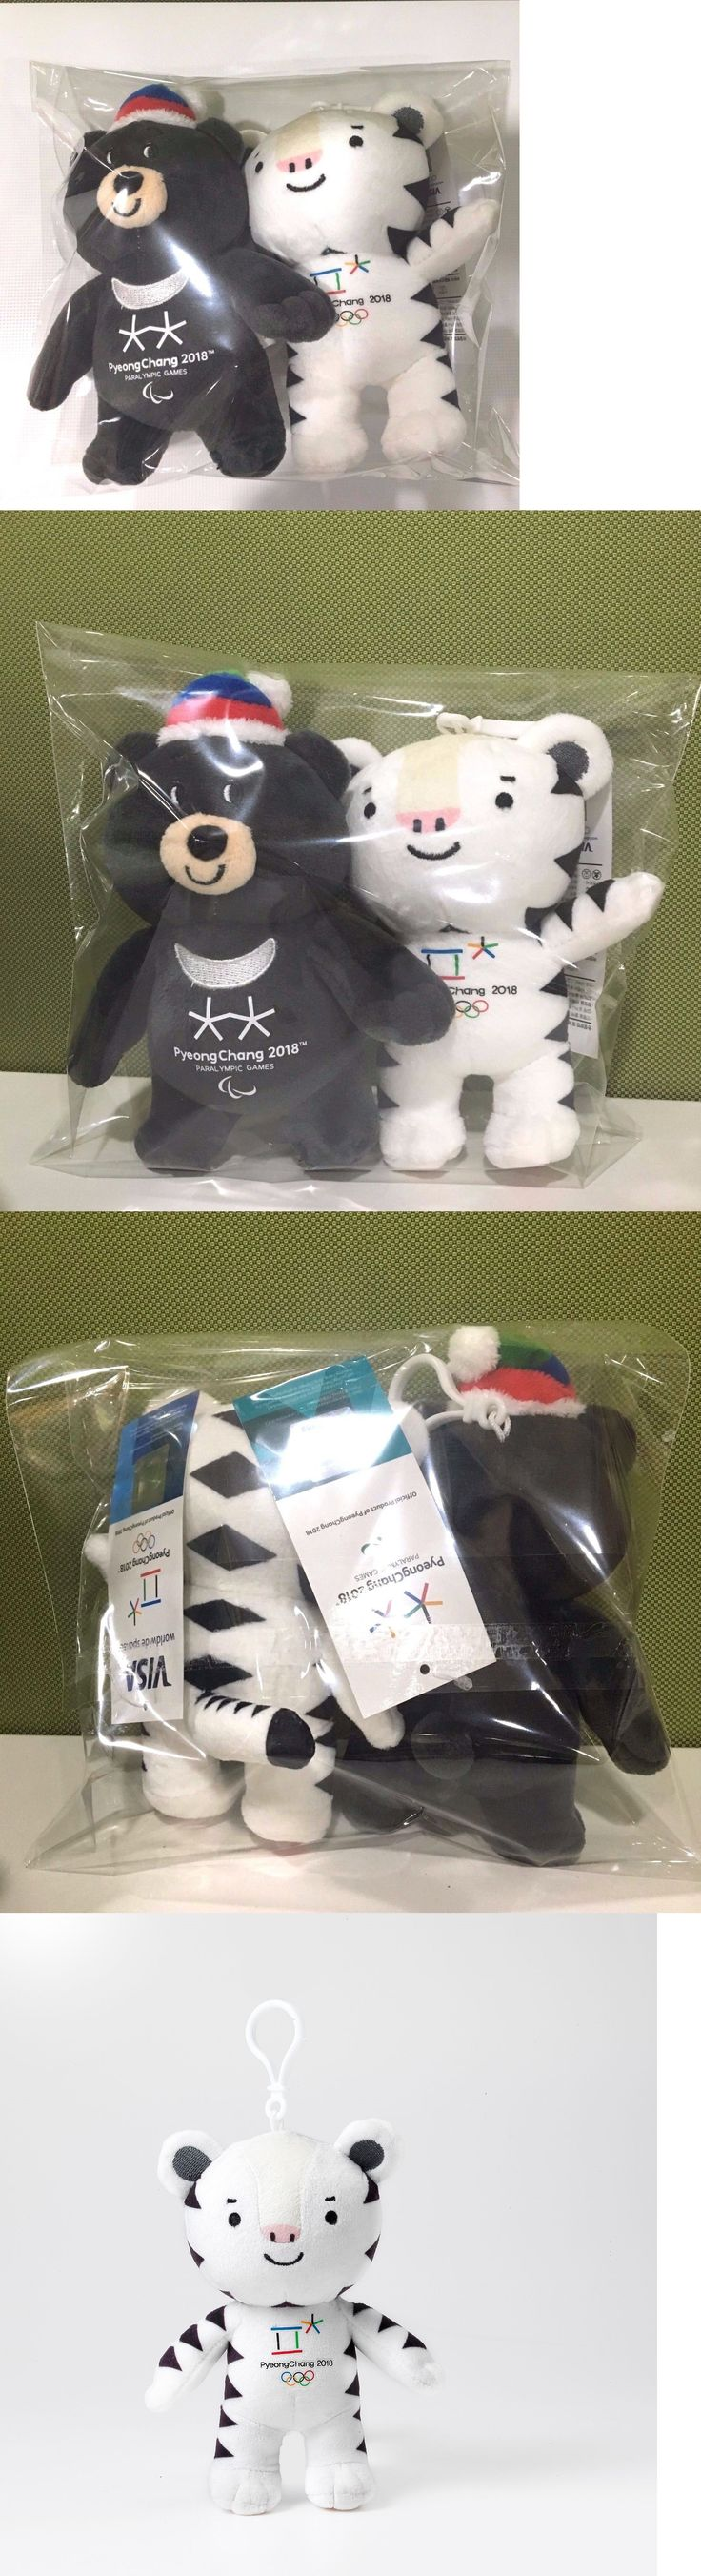 Olympics 27291: Pyeongchang 2018 Korea Winter Olympic Masoct Bag Charm Plush Doll 2Ea Bandabi -> BUY IT NOW ONLY: $40 on eBay!